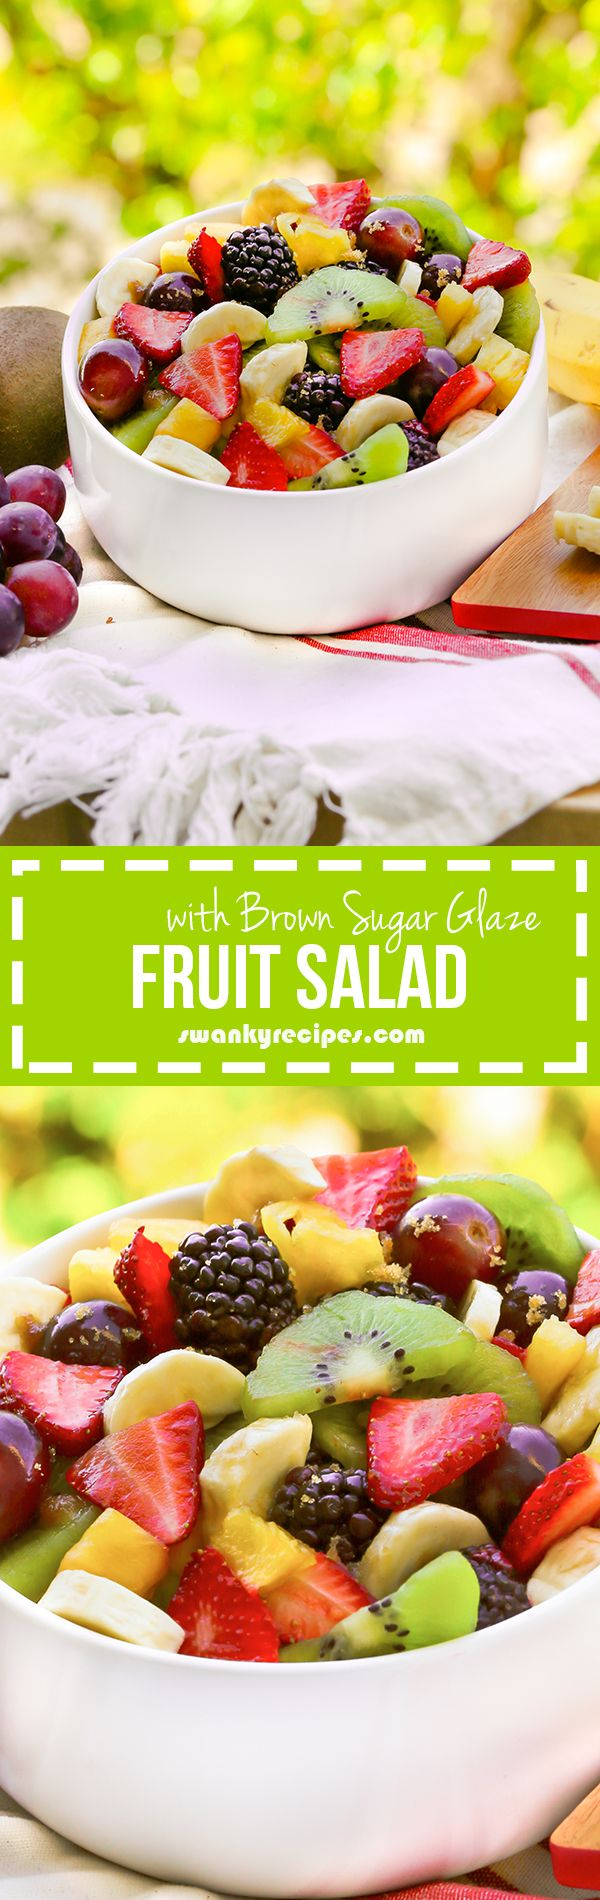 Fruit Salad with Brown Sugar Glaze - Fun recipe for summer parties and holidays.  Our family makes this recipe all the time and loves it, especially the juice glaze! #FreshWorks #ad #FreshWorksCrowd